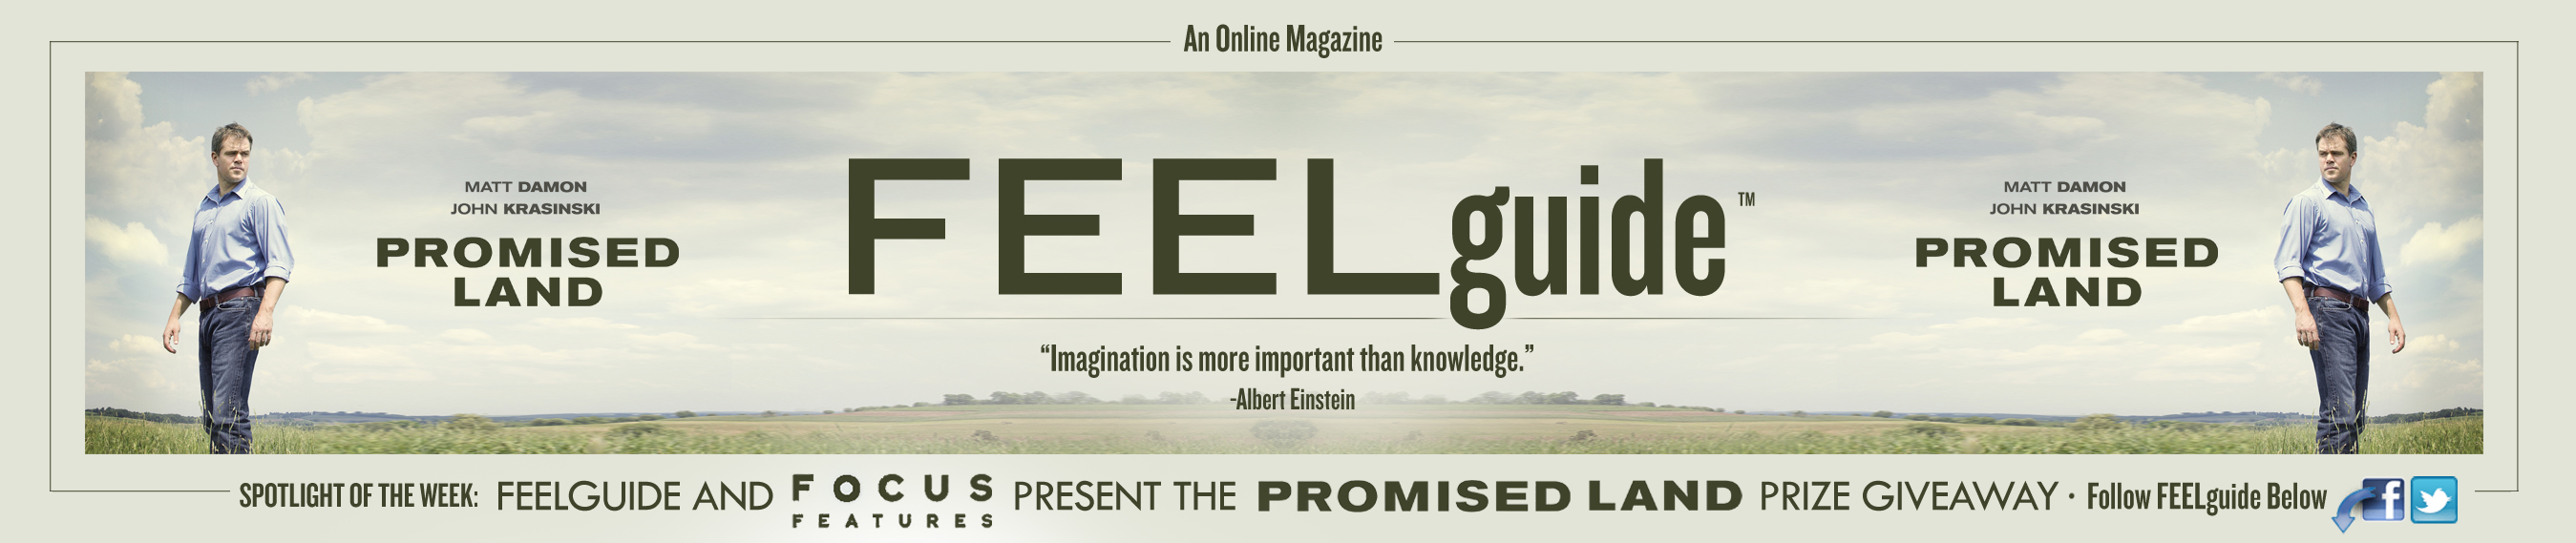 NEWBANNER109A2 Banner Photo #109: FEELguide And FOCUS Features Present The Promised Land Prize Giveaway